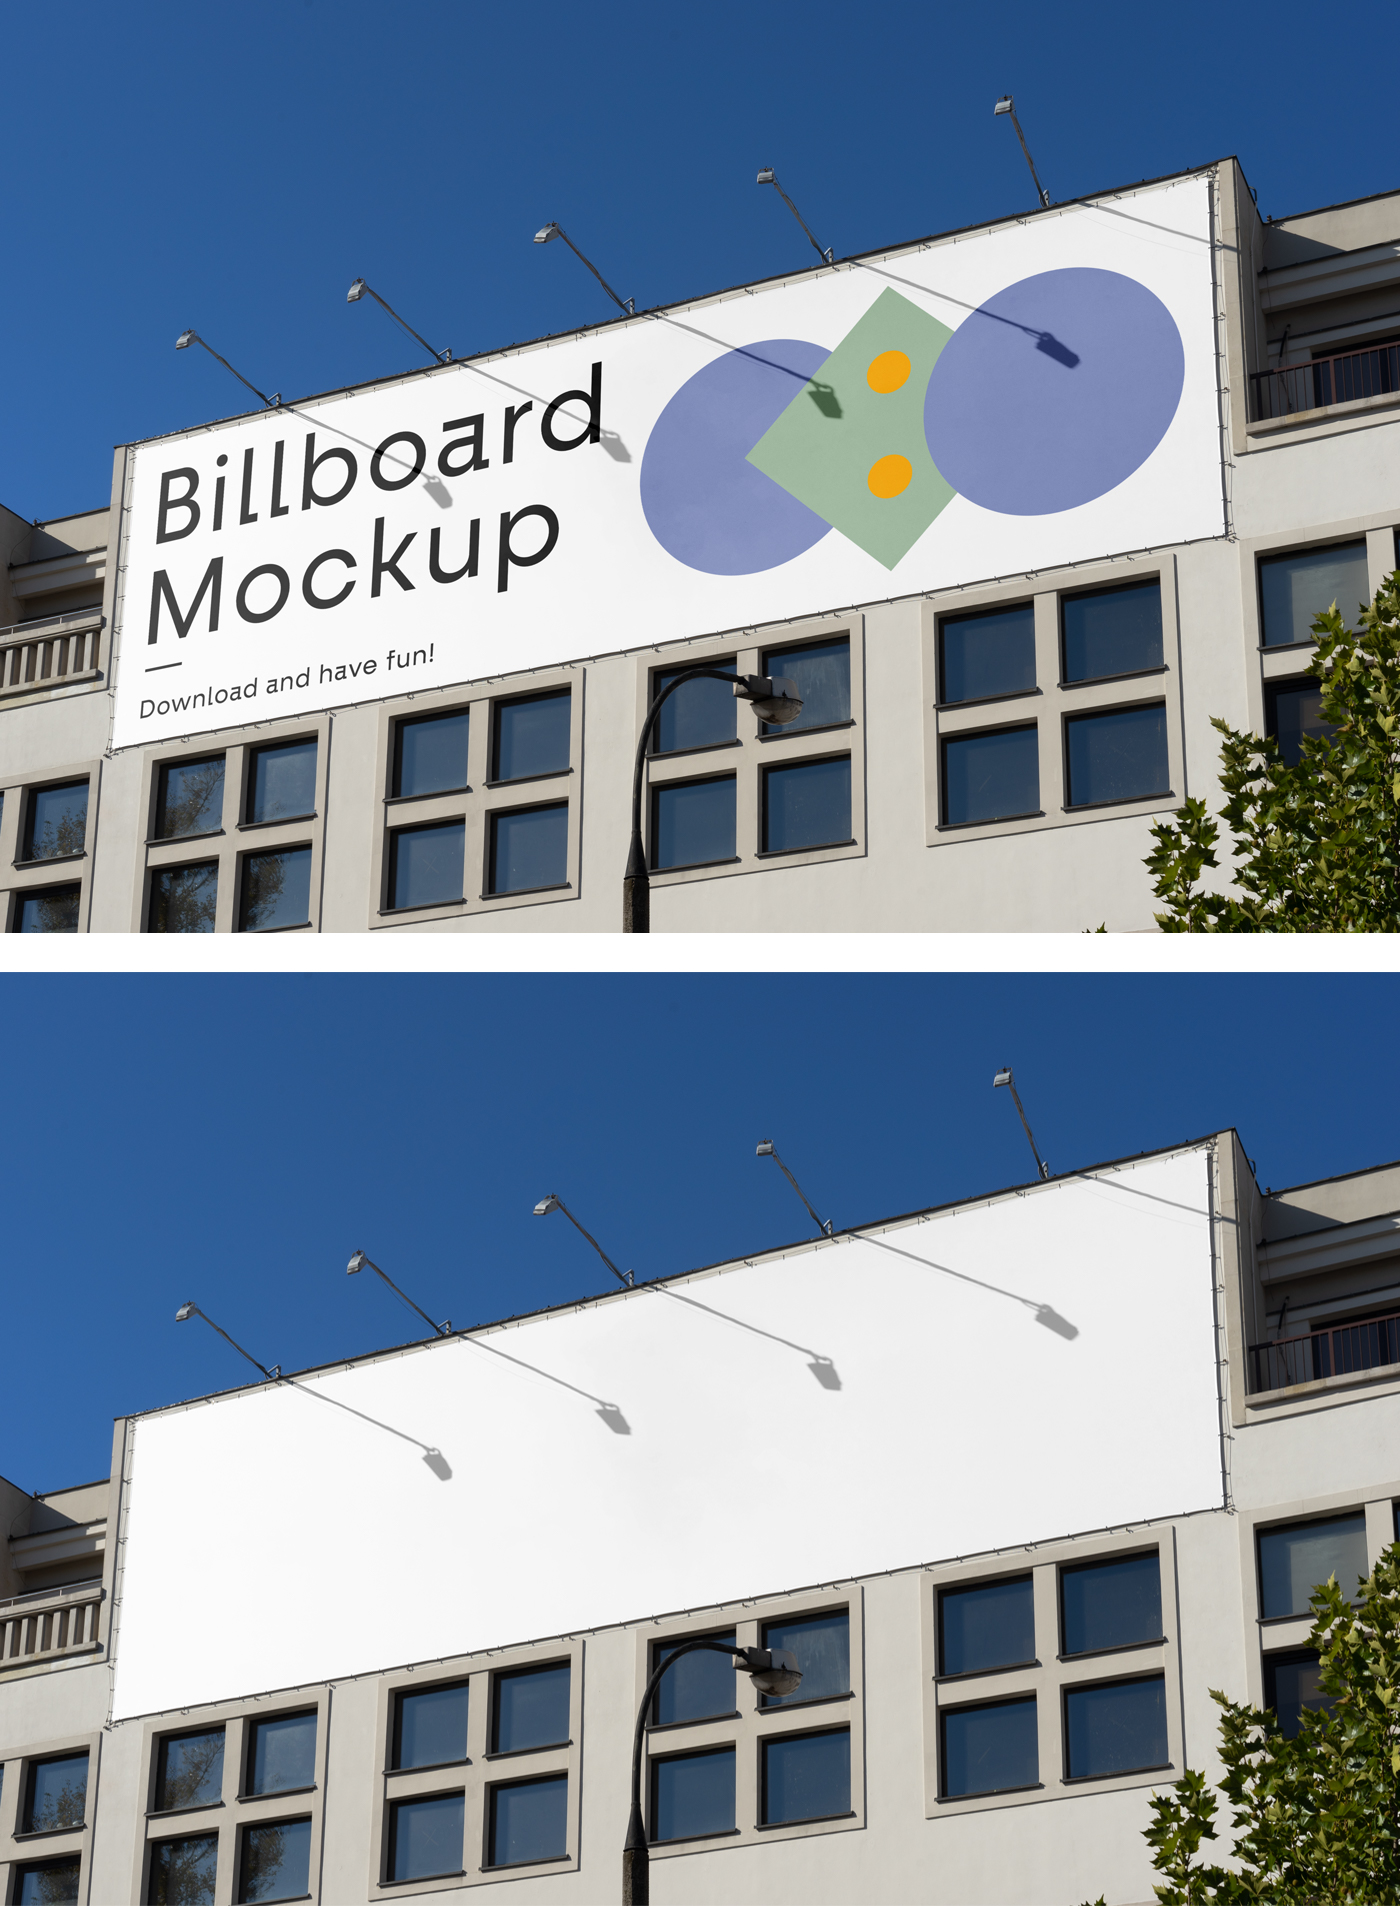 Billboard one the Building Mockup